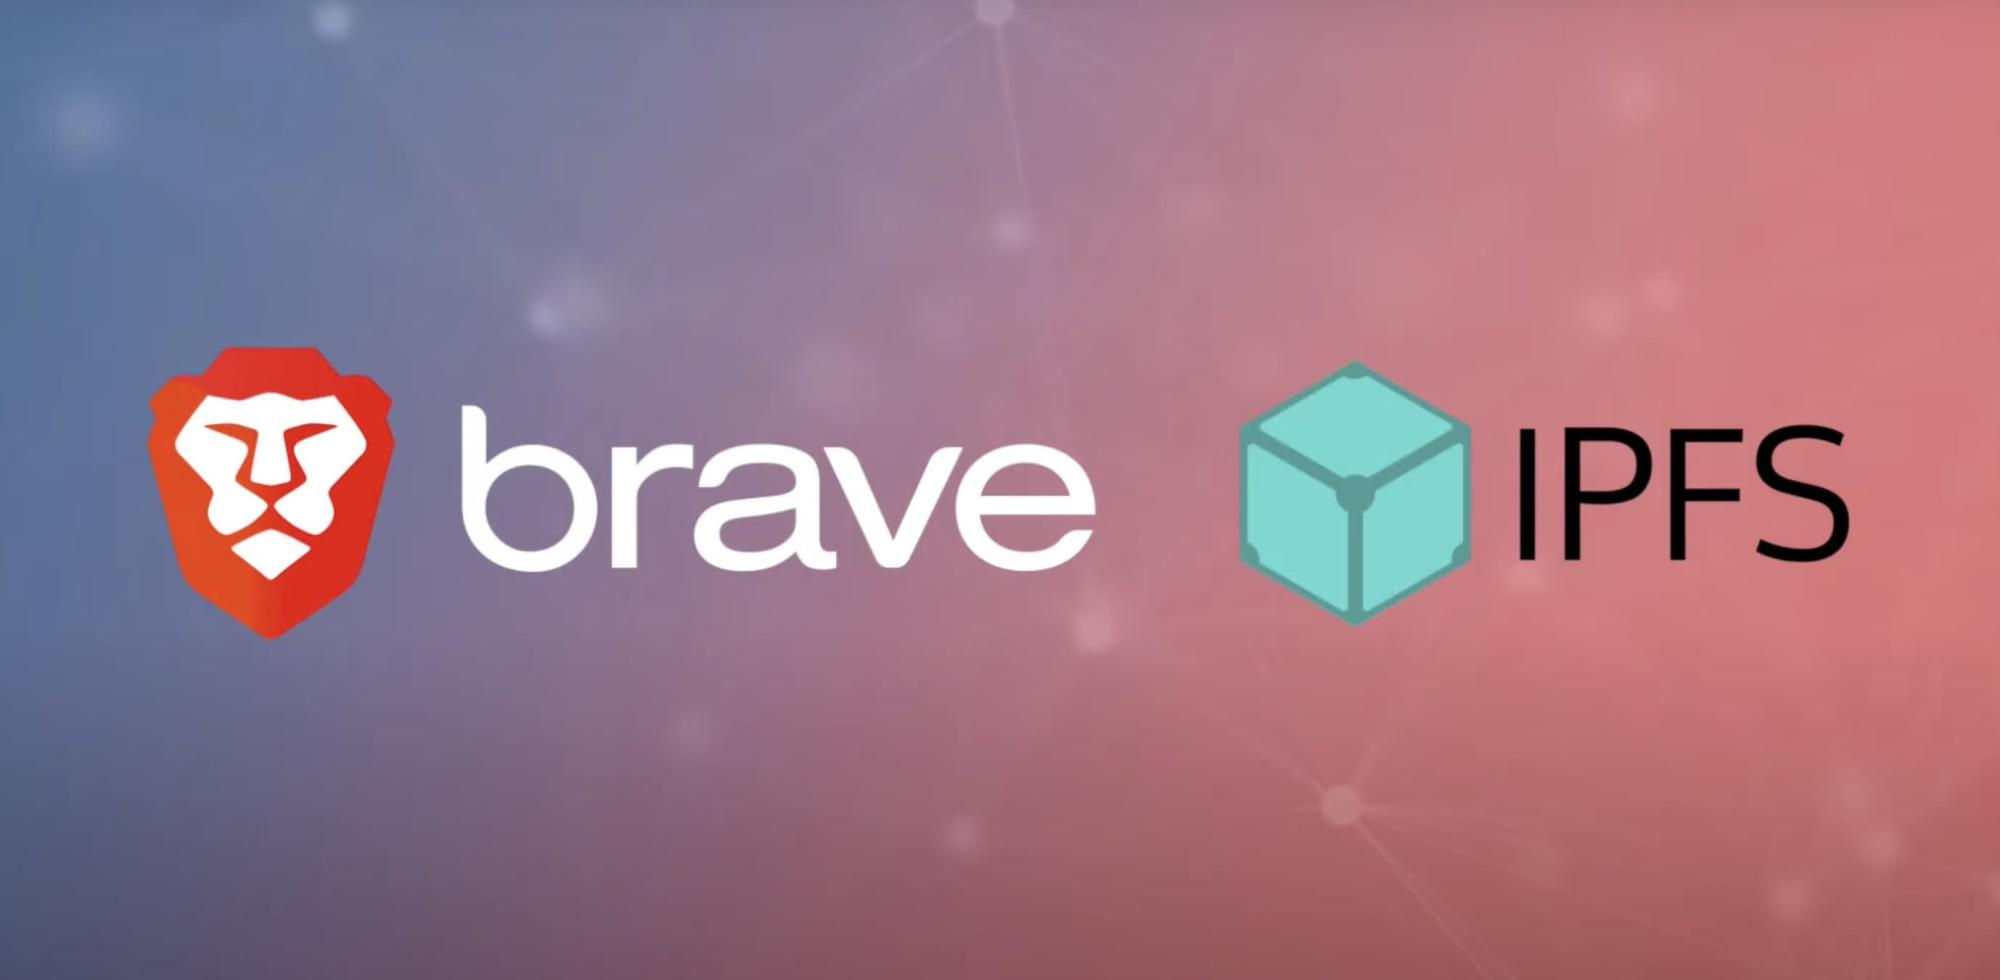 Brave web browser adds native support for peer-to-peer IPFS protocol